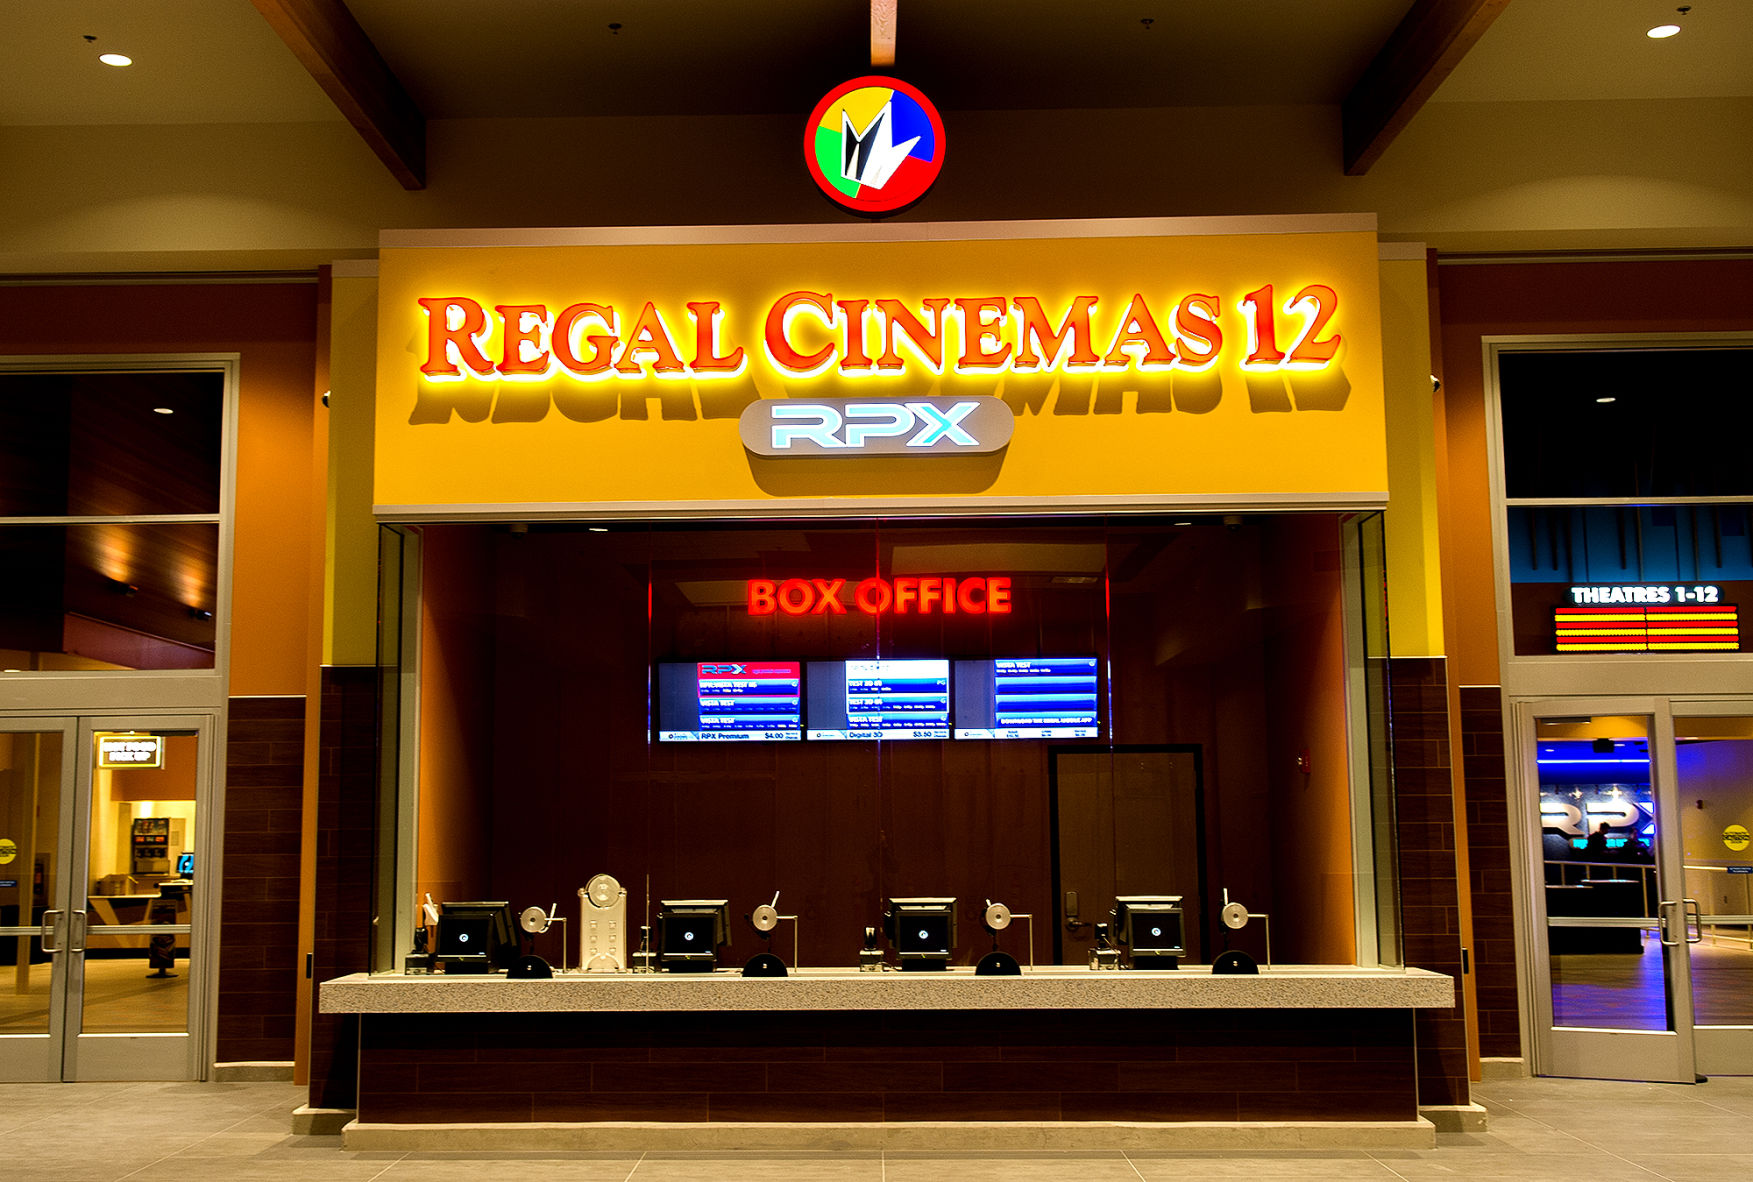 Photos: Tour the new Regal Cinemas at Three Rivers Mall | Local ...